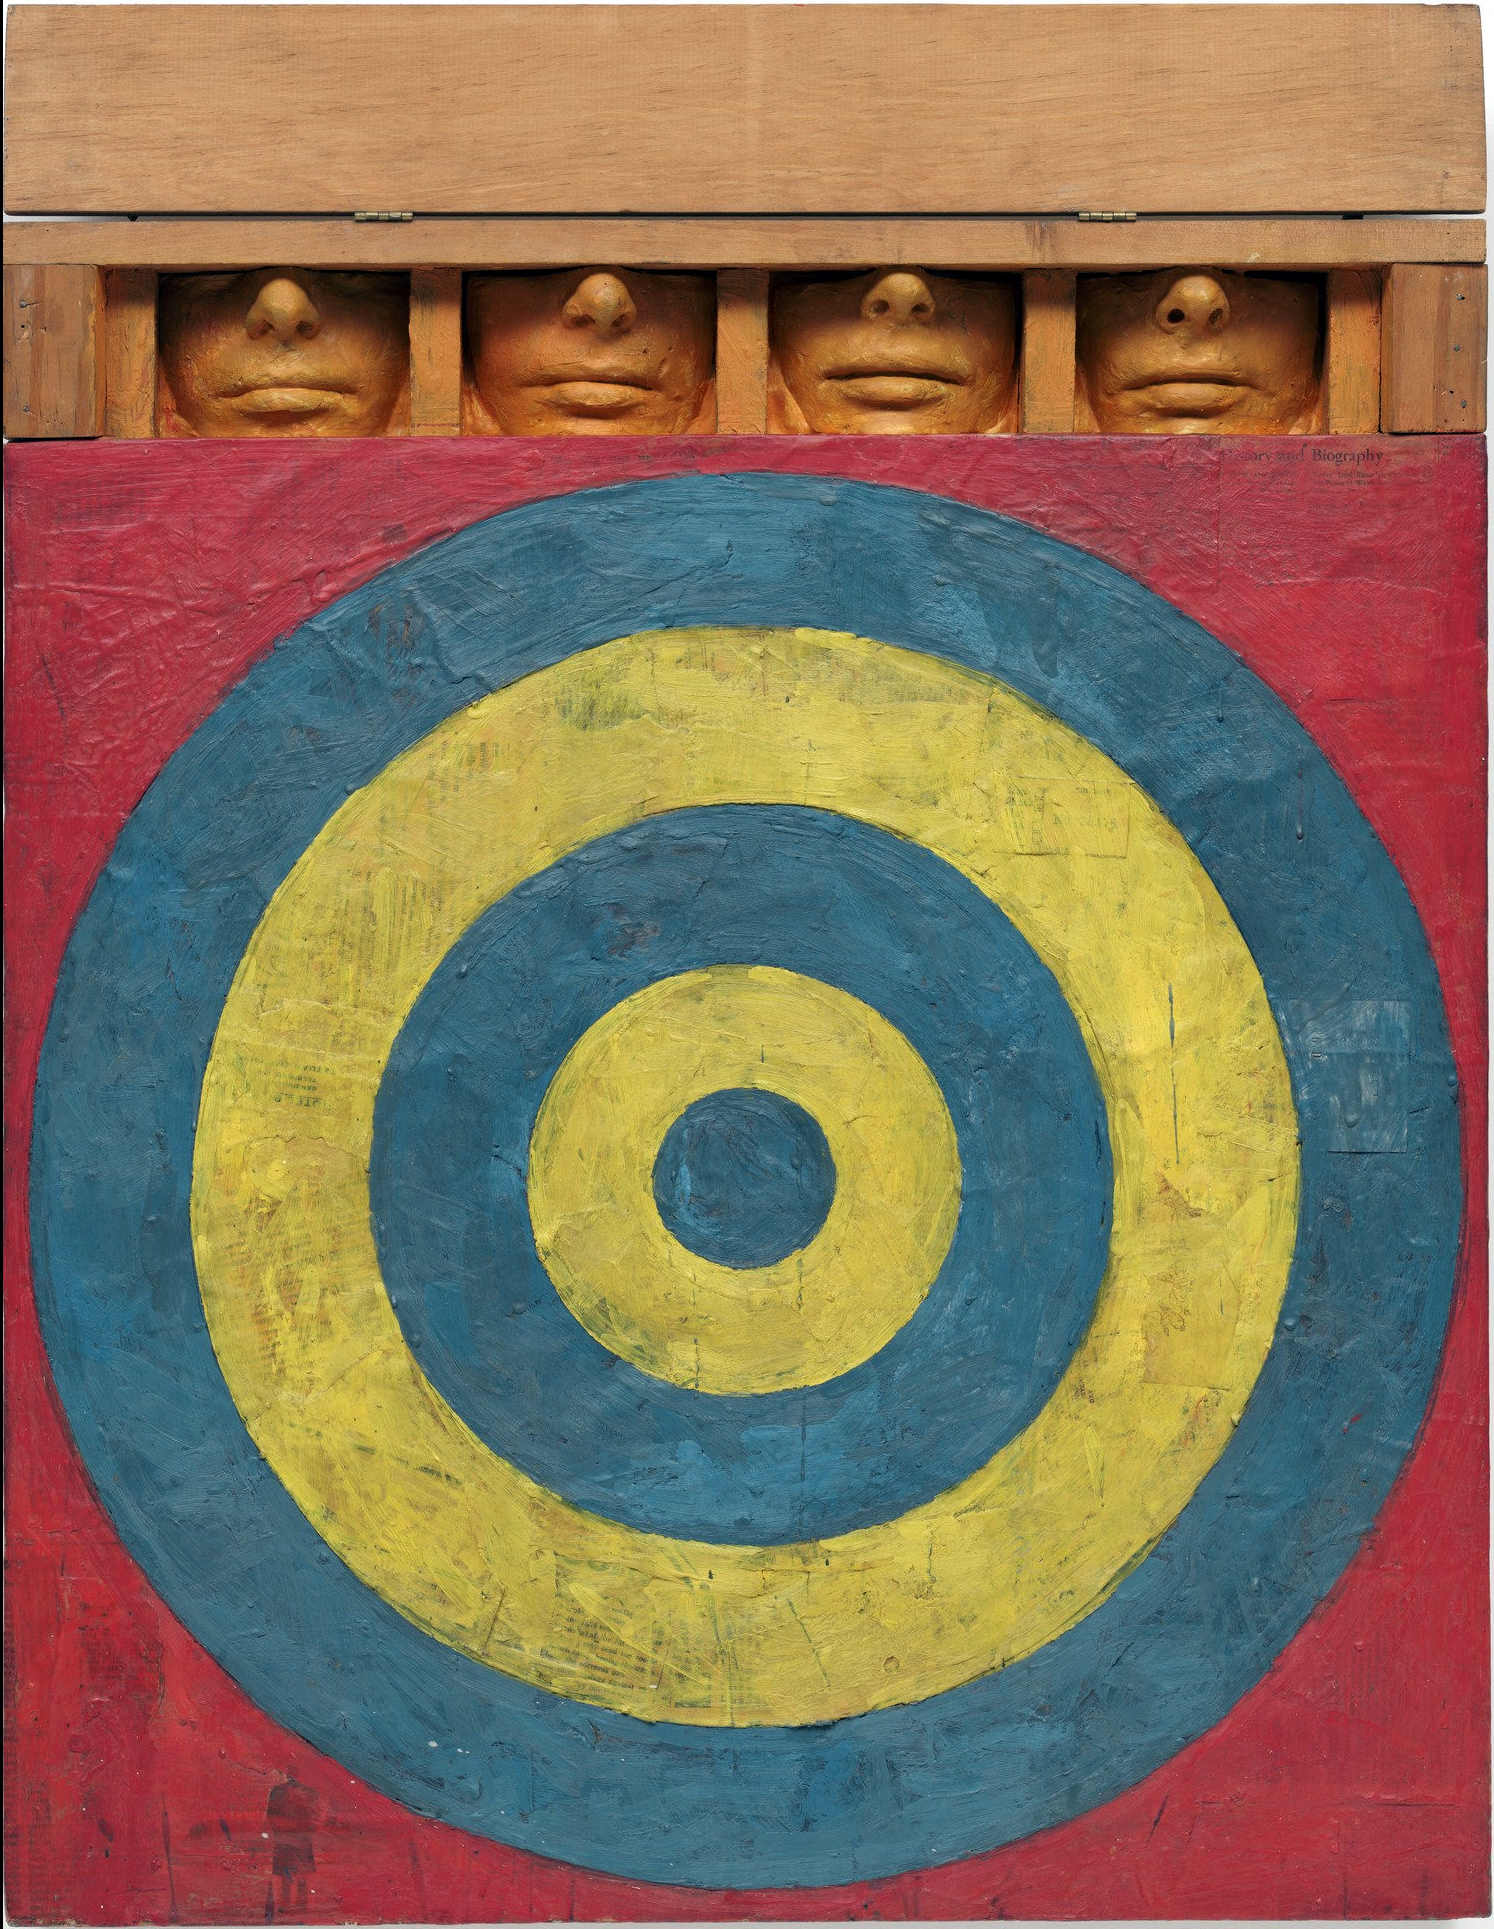 Target with Four Faces (1955) by Jasper Johns. As reproduced in our Phaidon Focus book